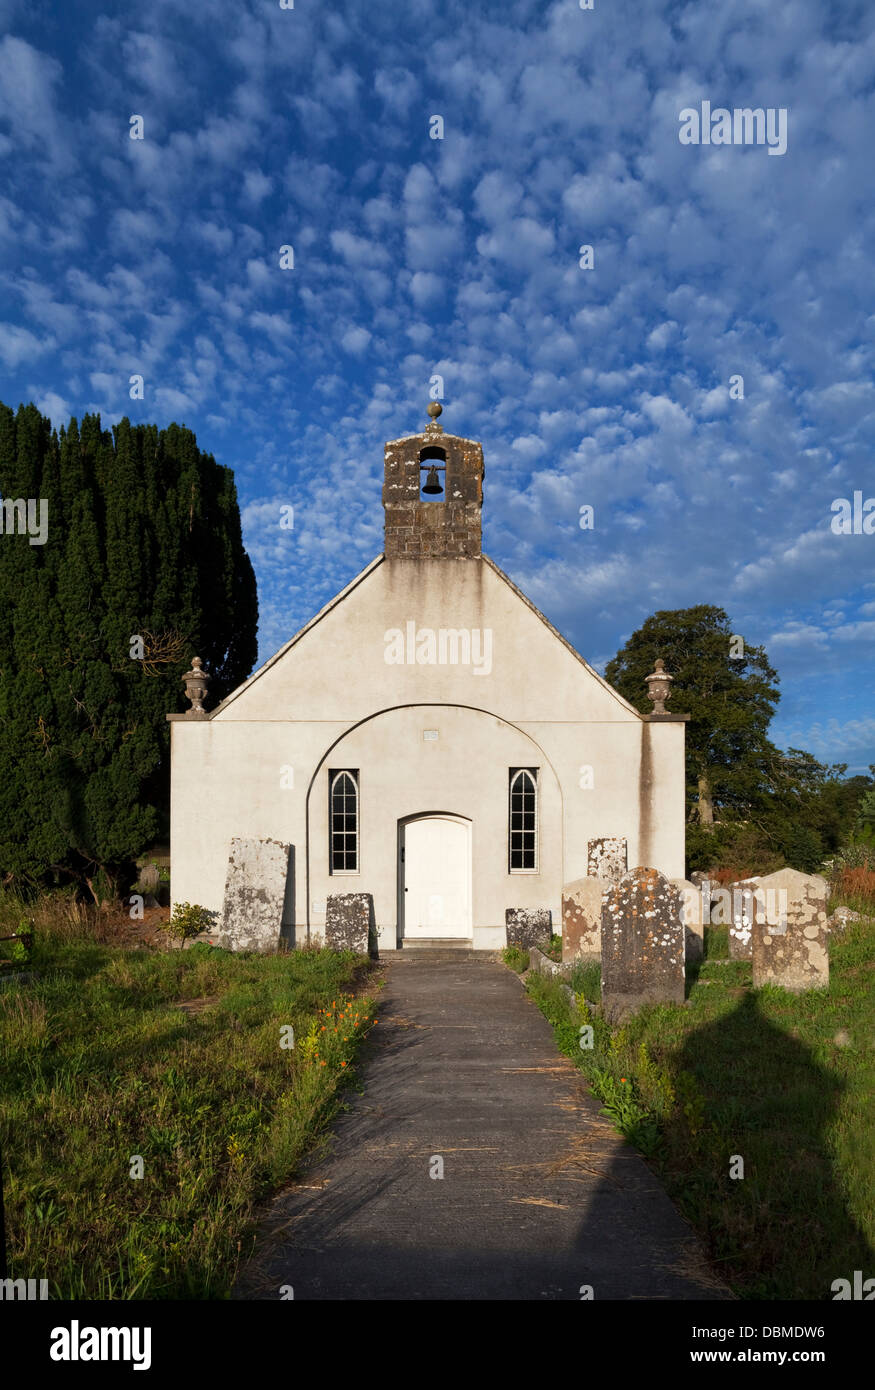 Redundant Church of Ireland church, built 1747 Fiddown, County Kilkenny, Ireland - Stock Image